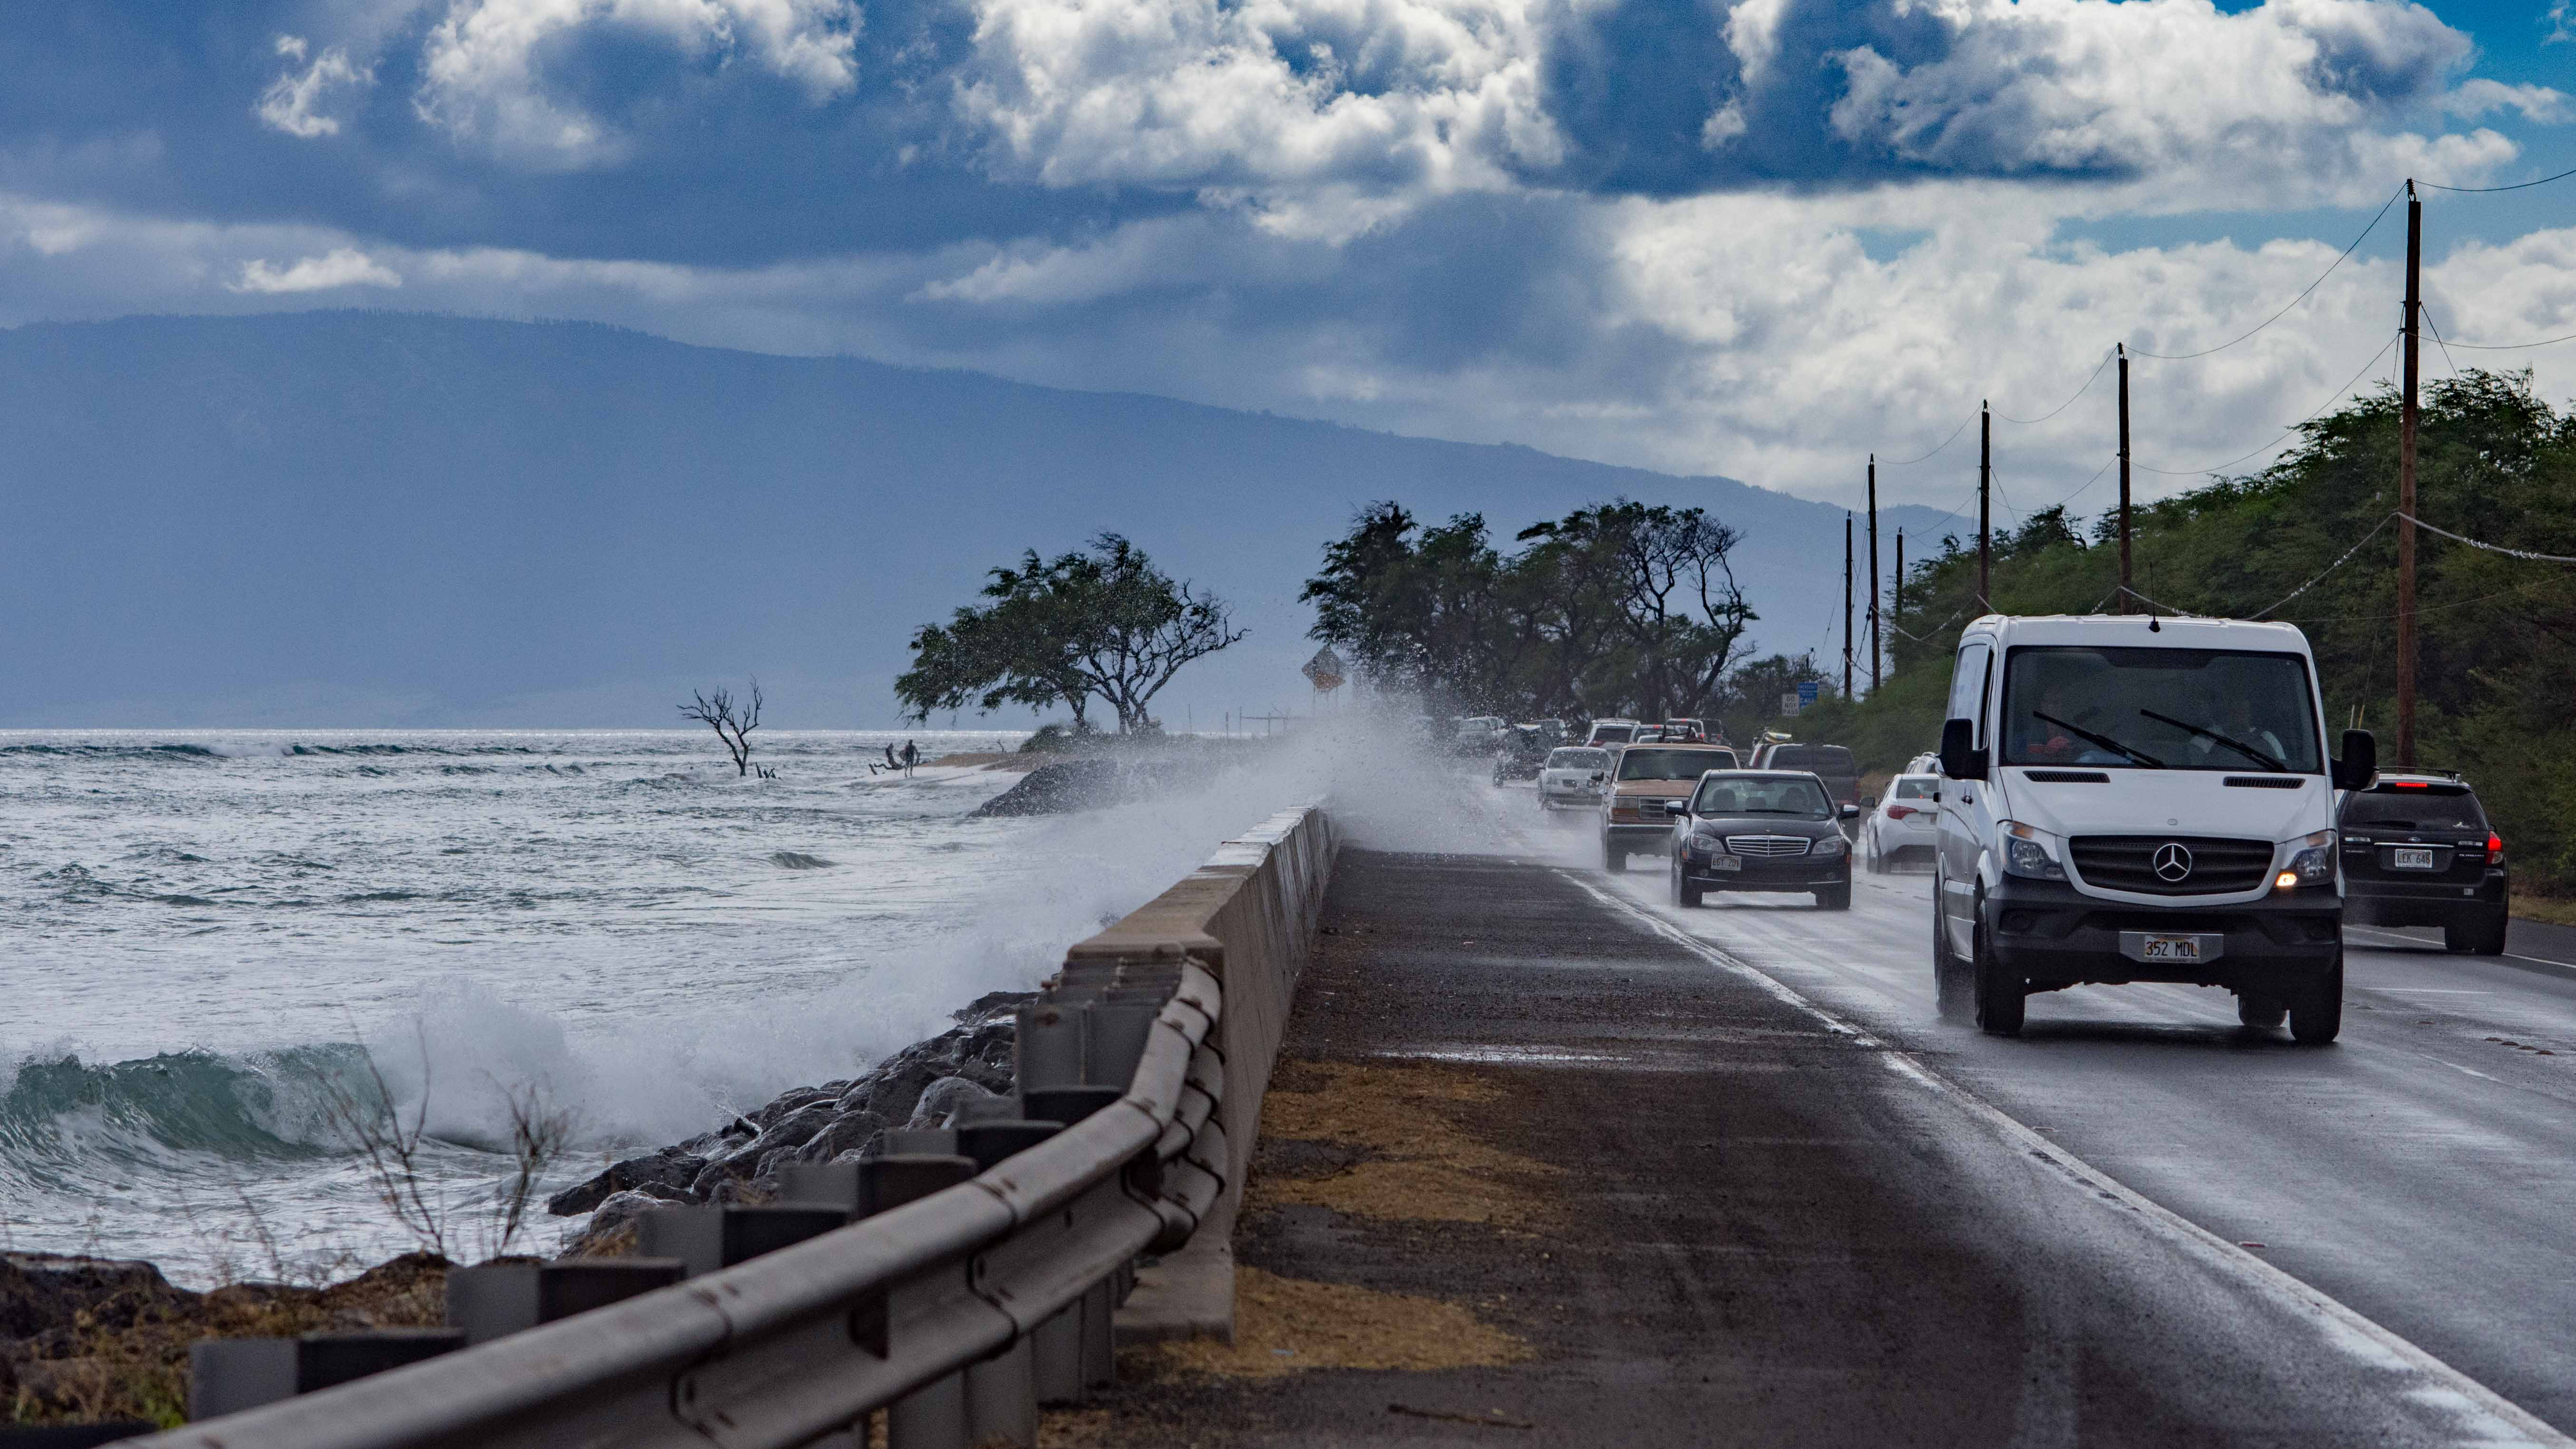 Road Advisory: Waves Washing onto Honoapiilani Hwy